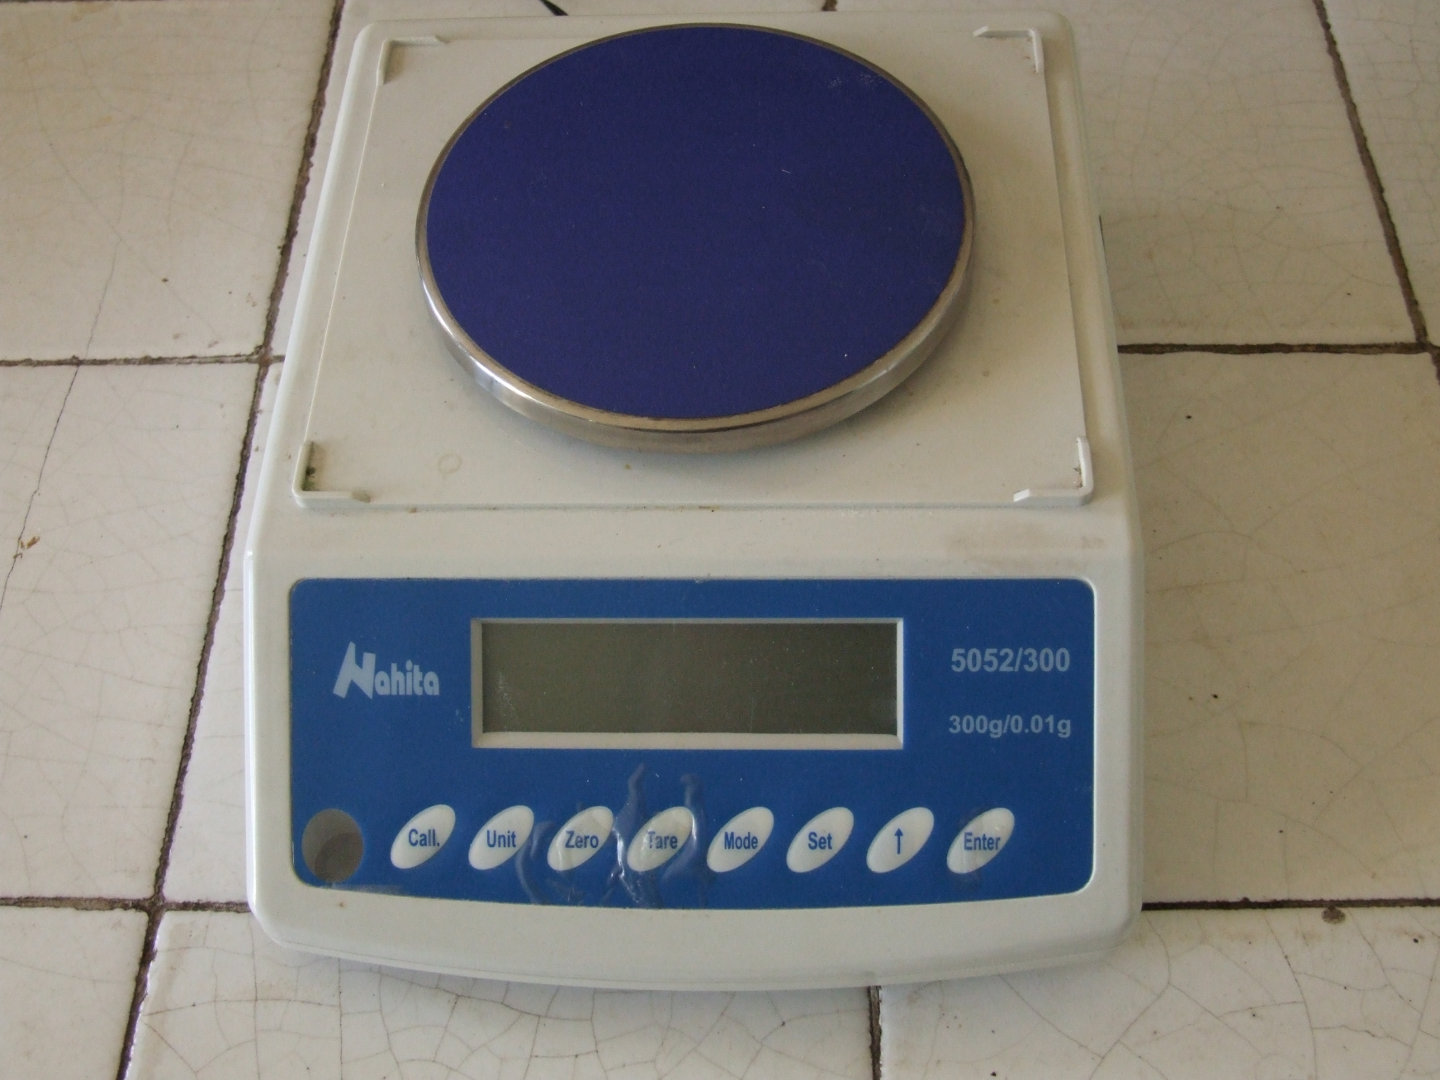 Digital scales of precision Nahita Serie 5052